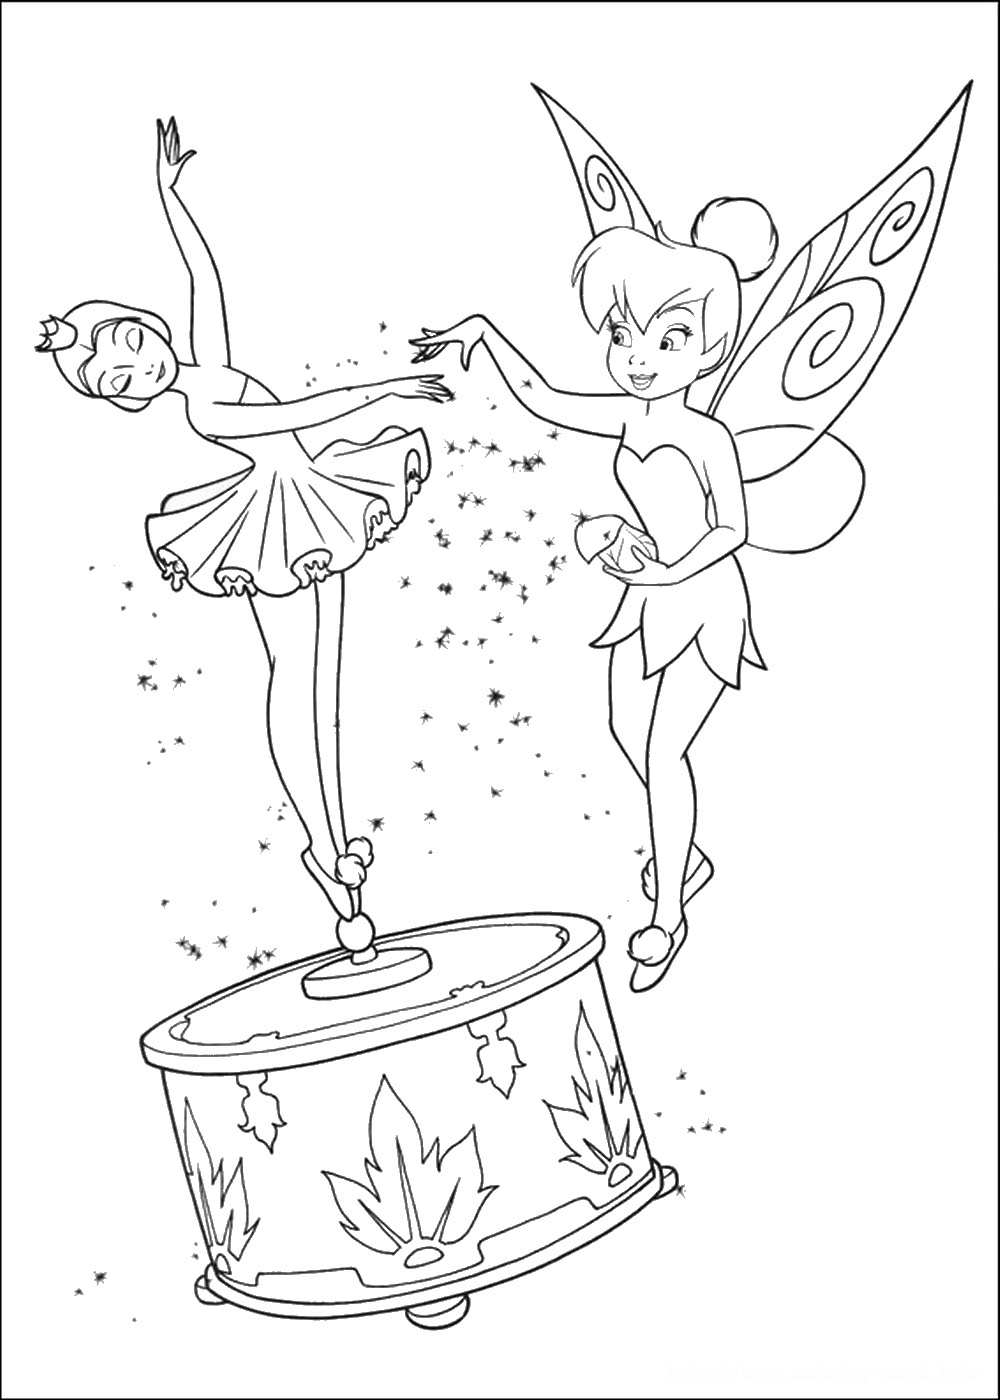 tinkerbell pictures to color tinker bell coloring pages to download and print for free tinkerbell pictures color to